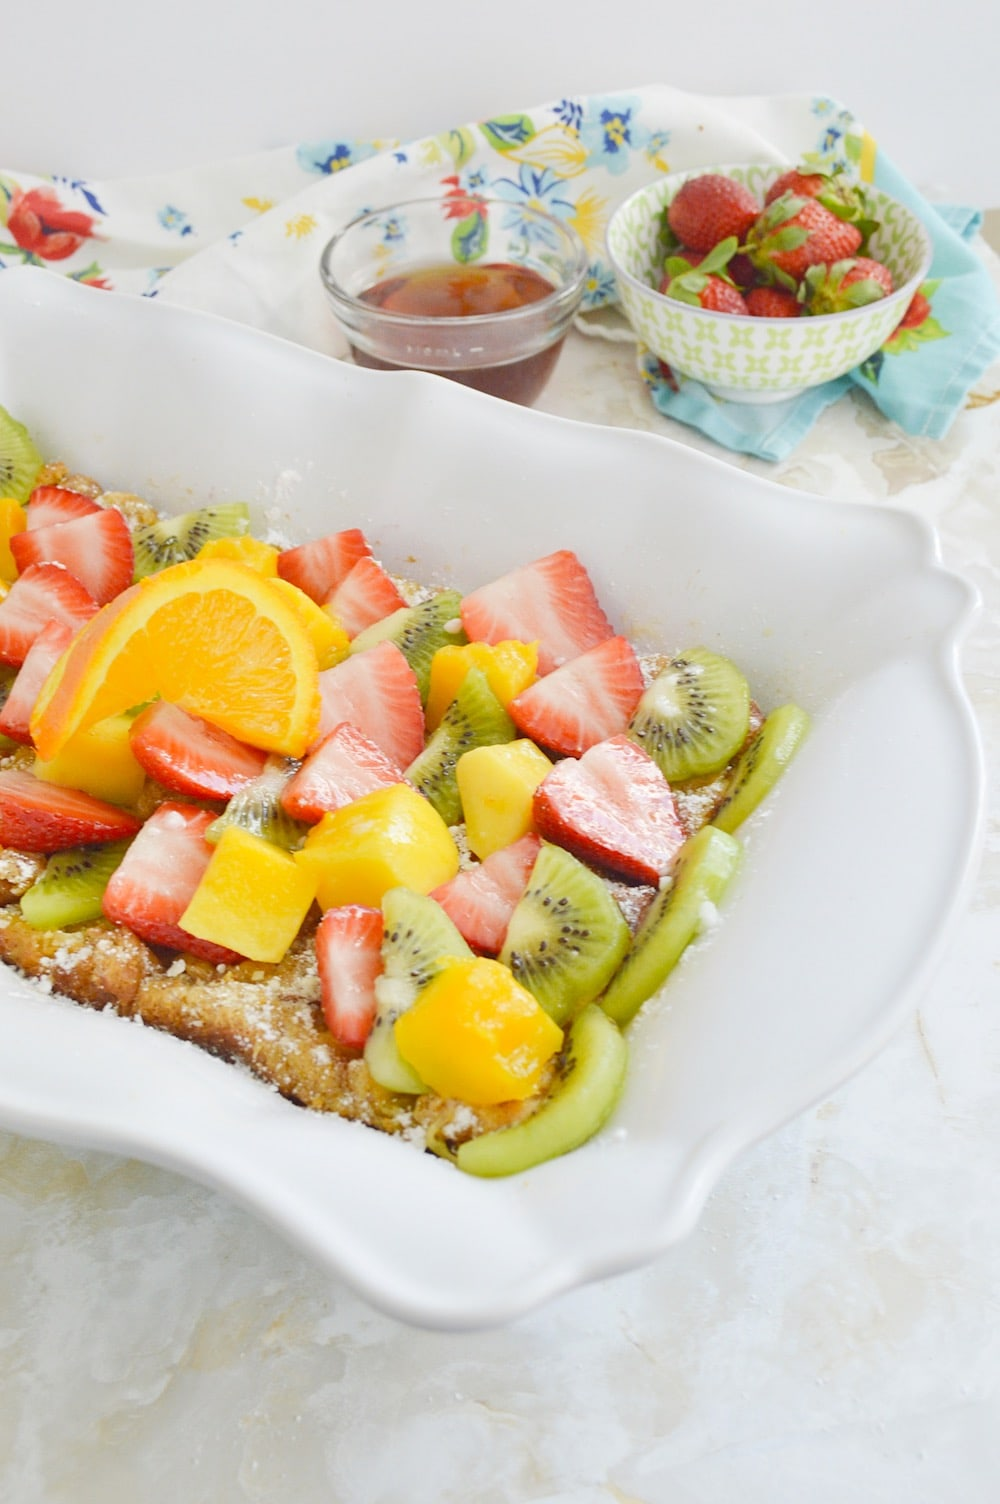 Make-ahead French Toast bake in a white casserole dish.